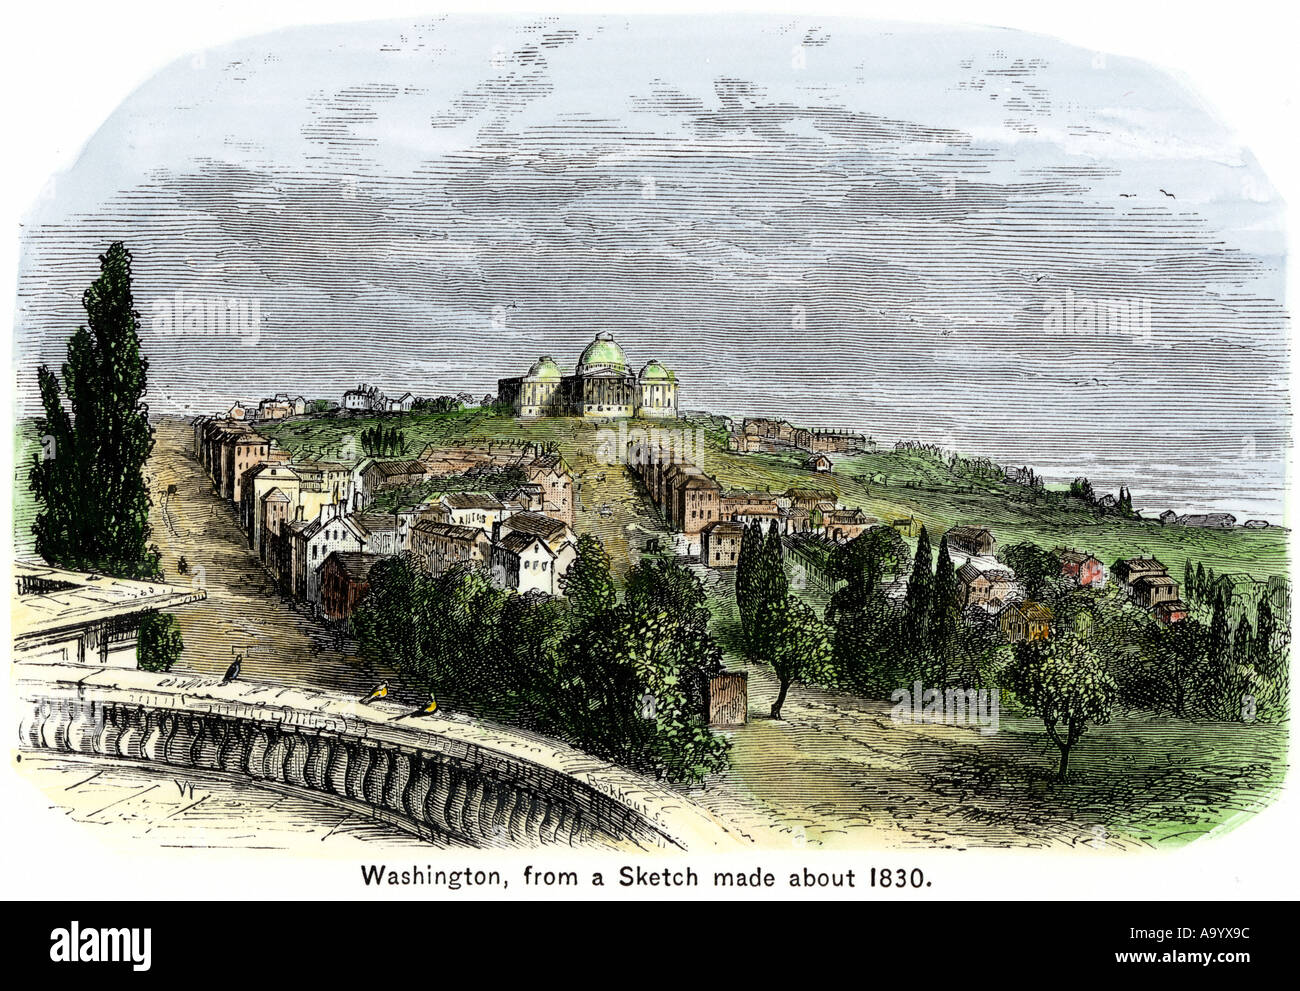 Washington DC from a sketch made about 1830. Hand-colored woodcut - Stock Image